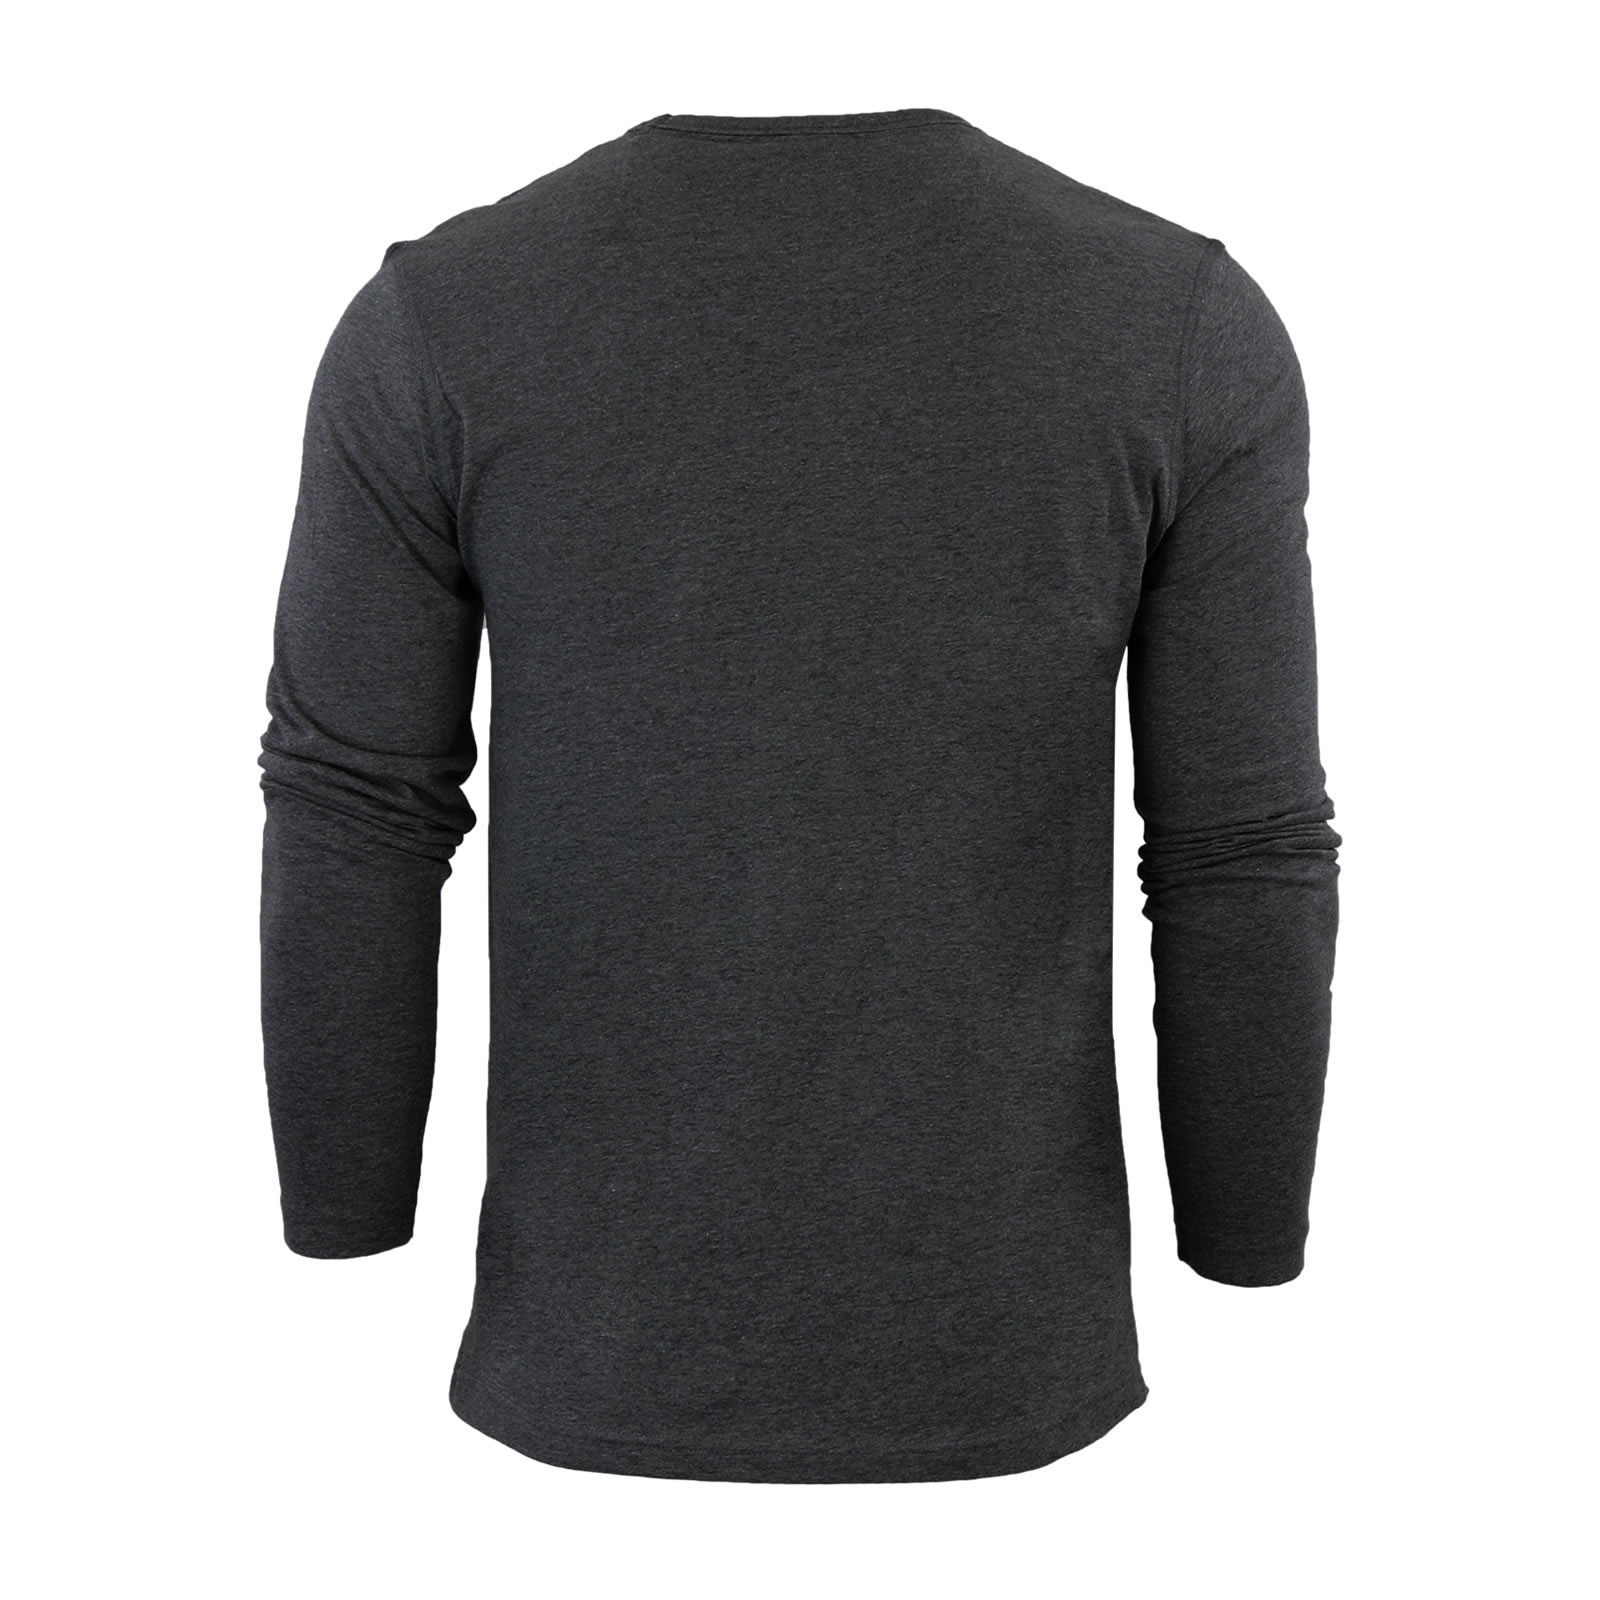 T-shirt-homme-par-brave-soul-prague-en-coton-a-encolure-ras-du-cou-a-manches-longues-top-casual miniature 6